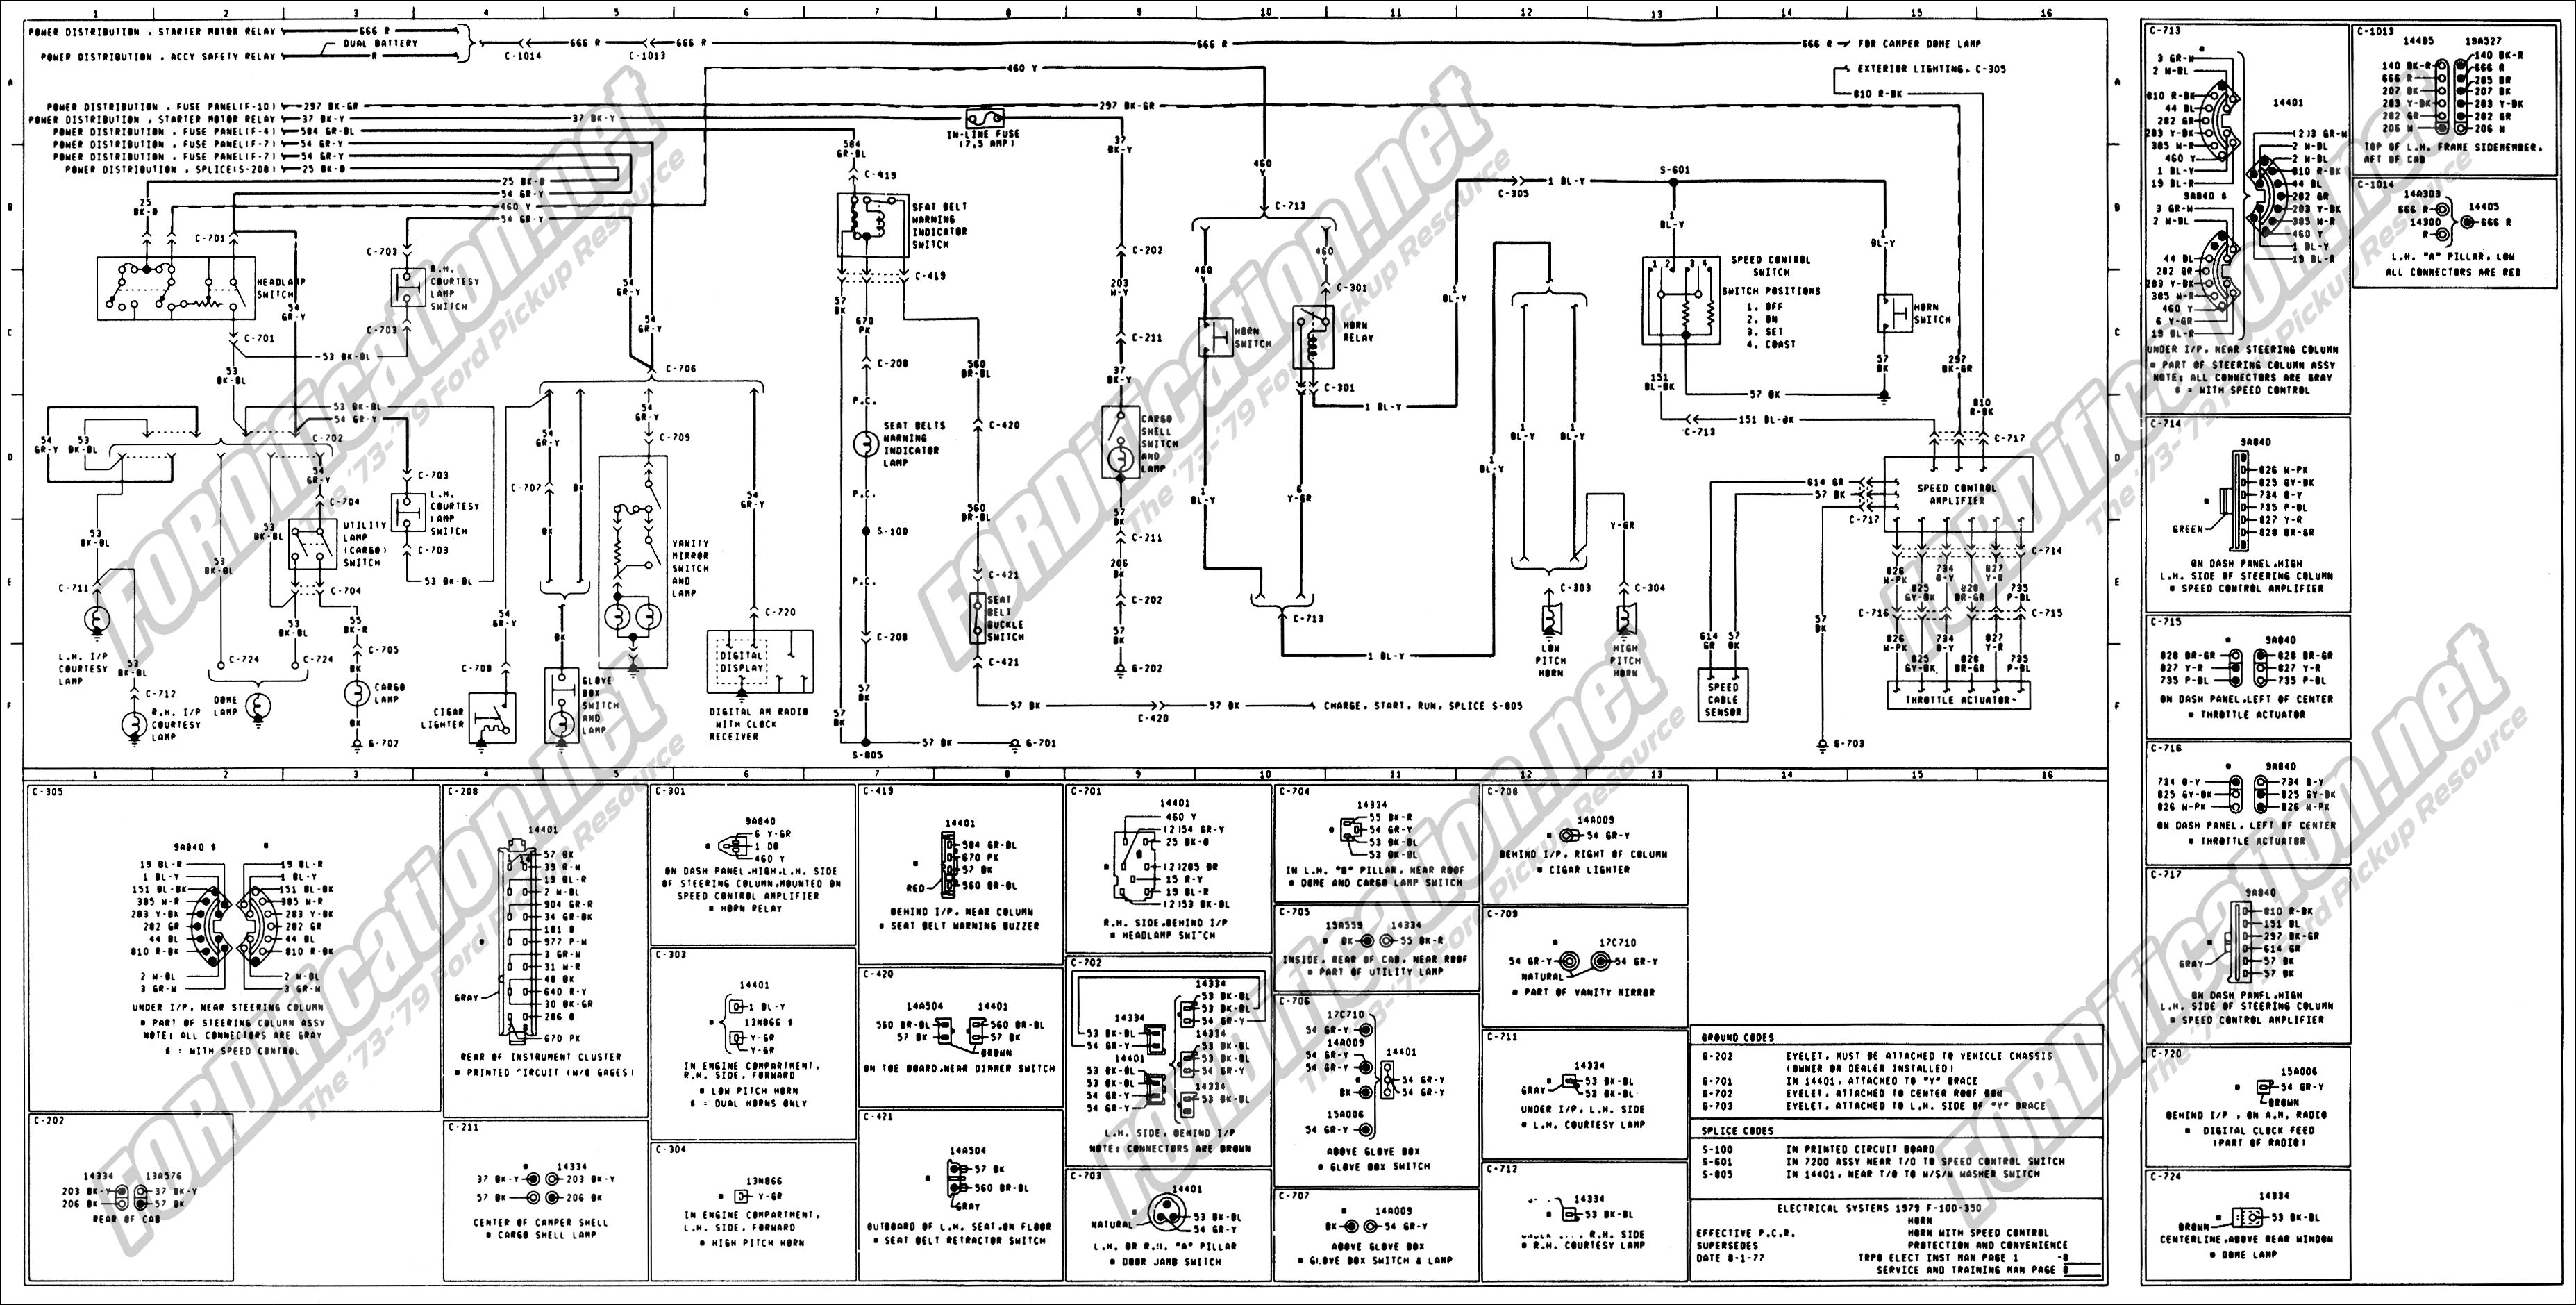 wiring_79master_8of9 1973 1979 ford truck wiring diagrams & schematics fordification net 1979 ford bronco wiring diagram at mifinder.co